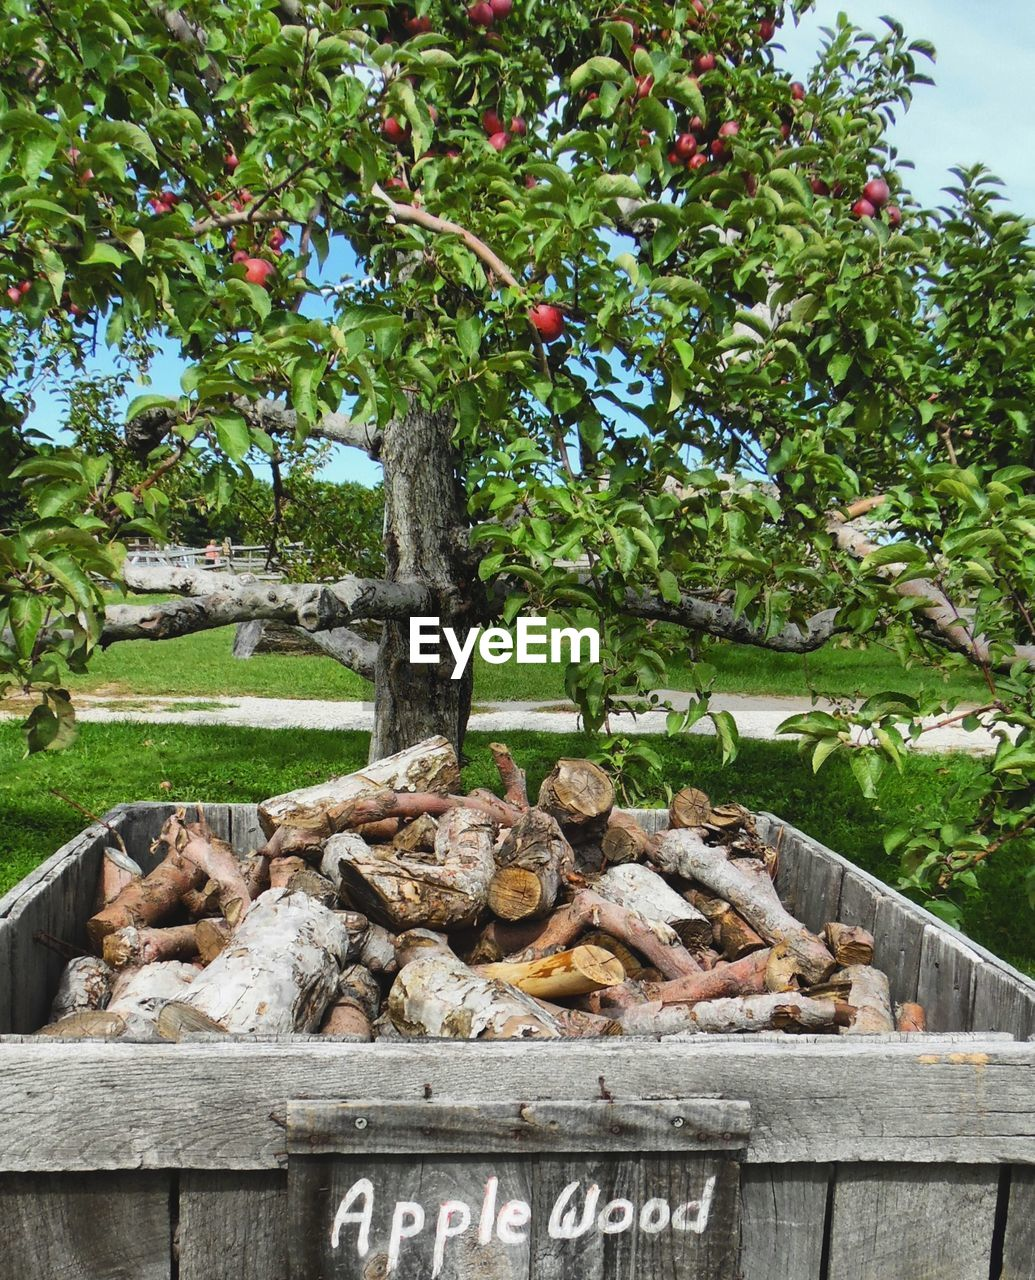 tree, plant, day, nature, text, western script, no people, growth, outdoors, wood - material, grass, communication, solid, healthy eating, food and drink, stack, stone - object, park, wood, food